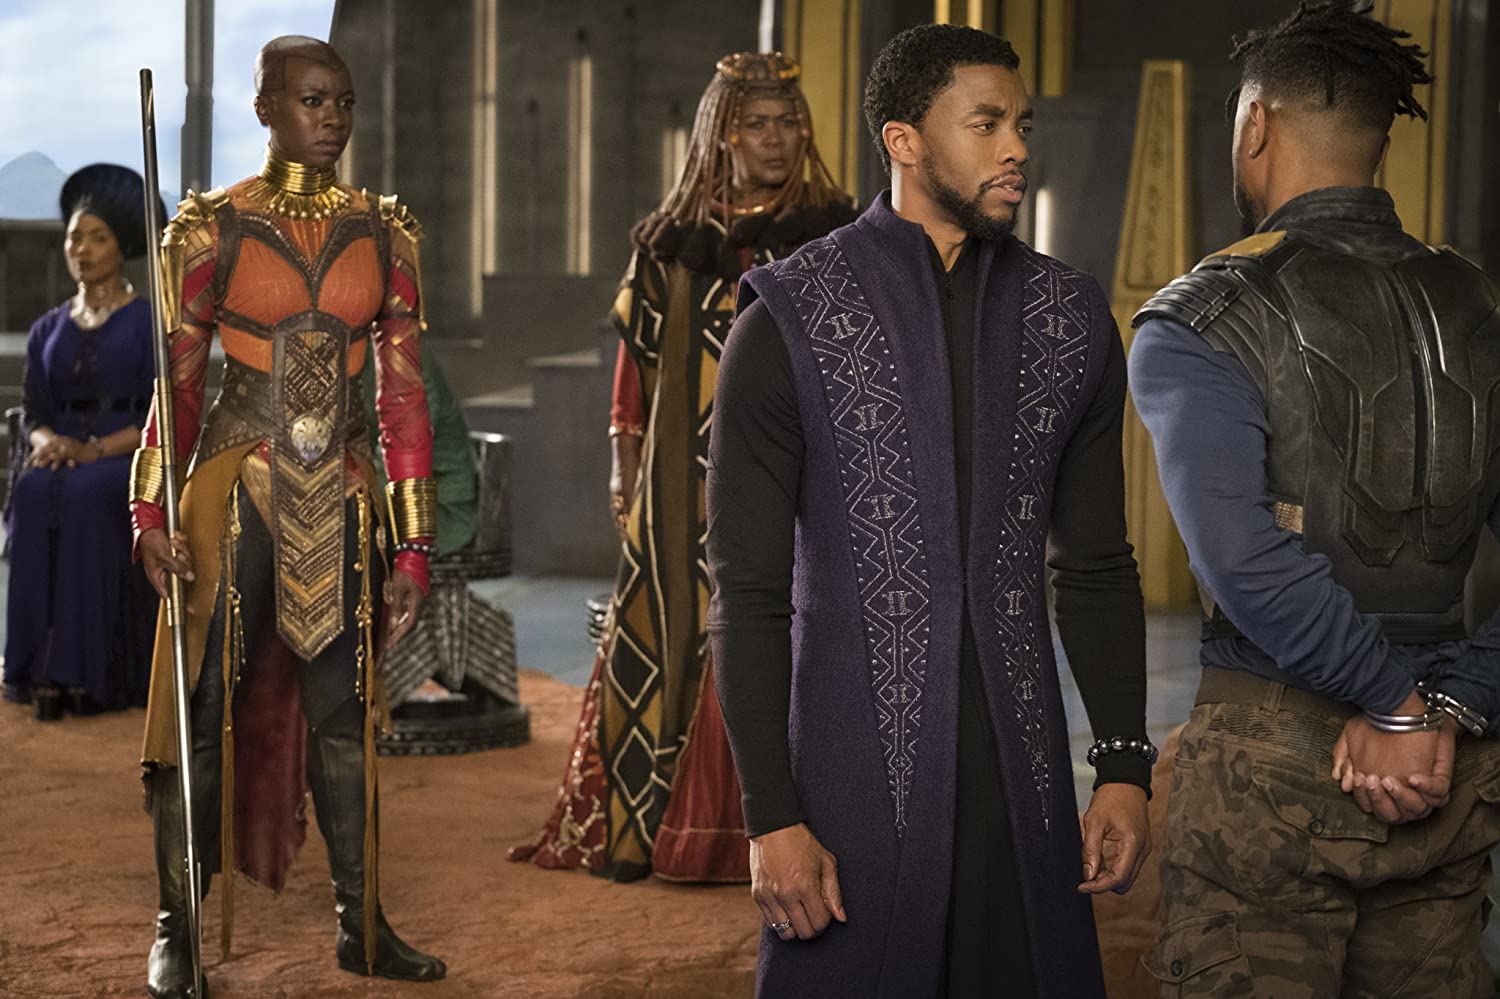 Angela Bassett, Connie Chiume, Michael B. Jordan, Chadwick Boseman, and Danai Gurira in Black Panther (2018)